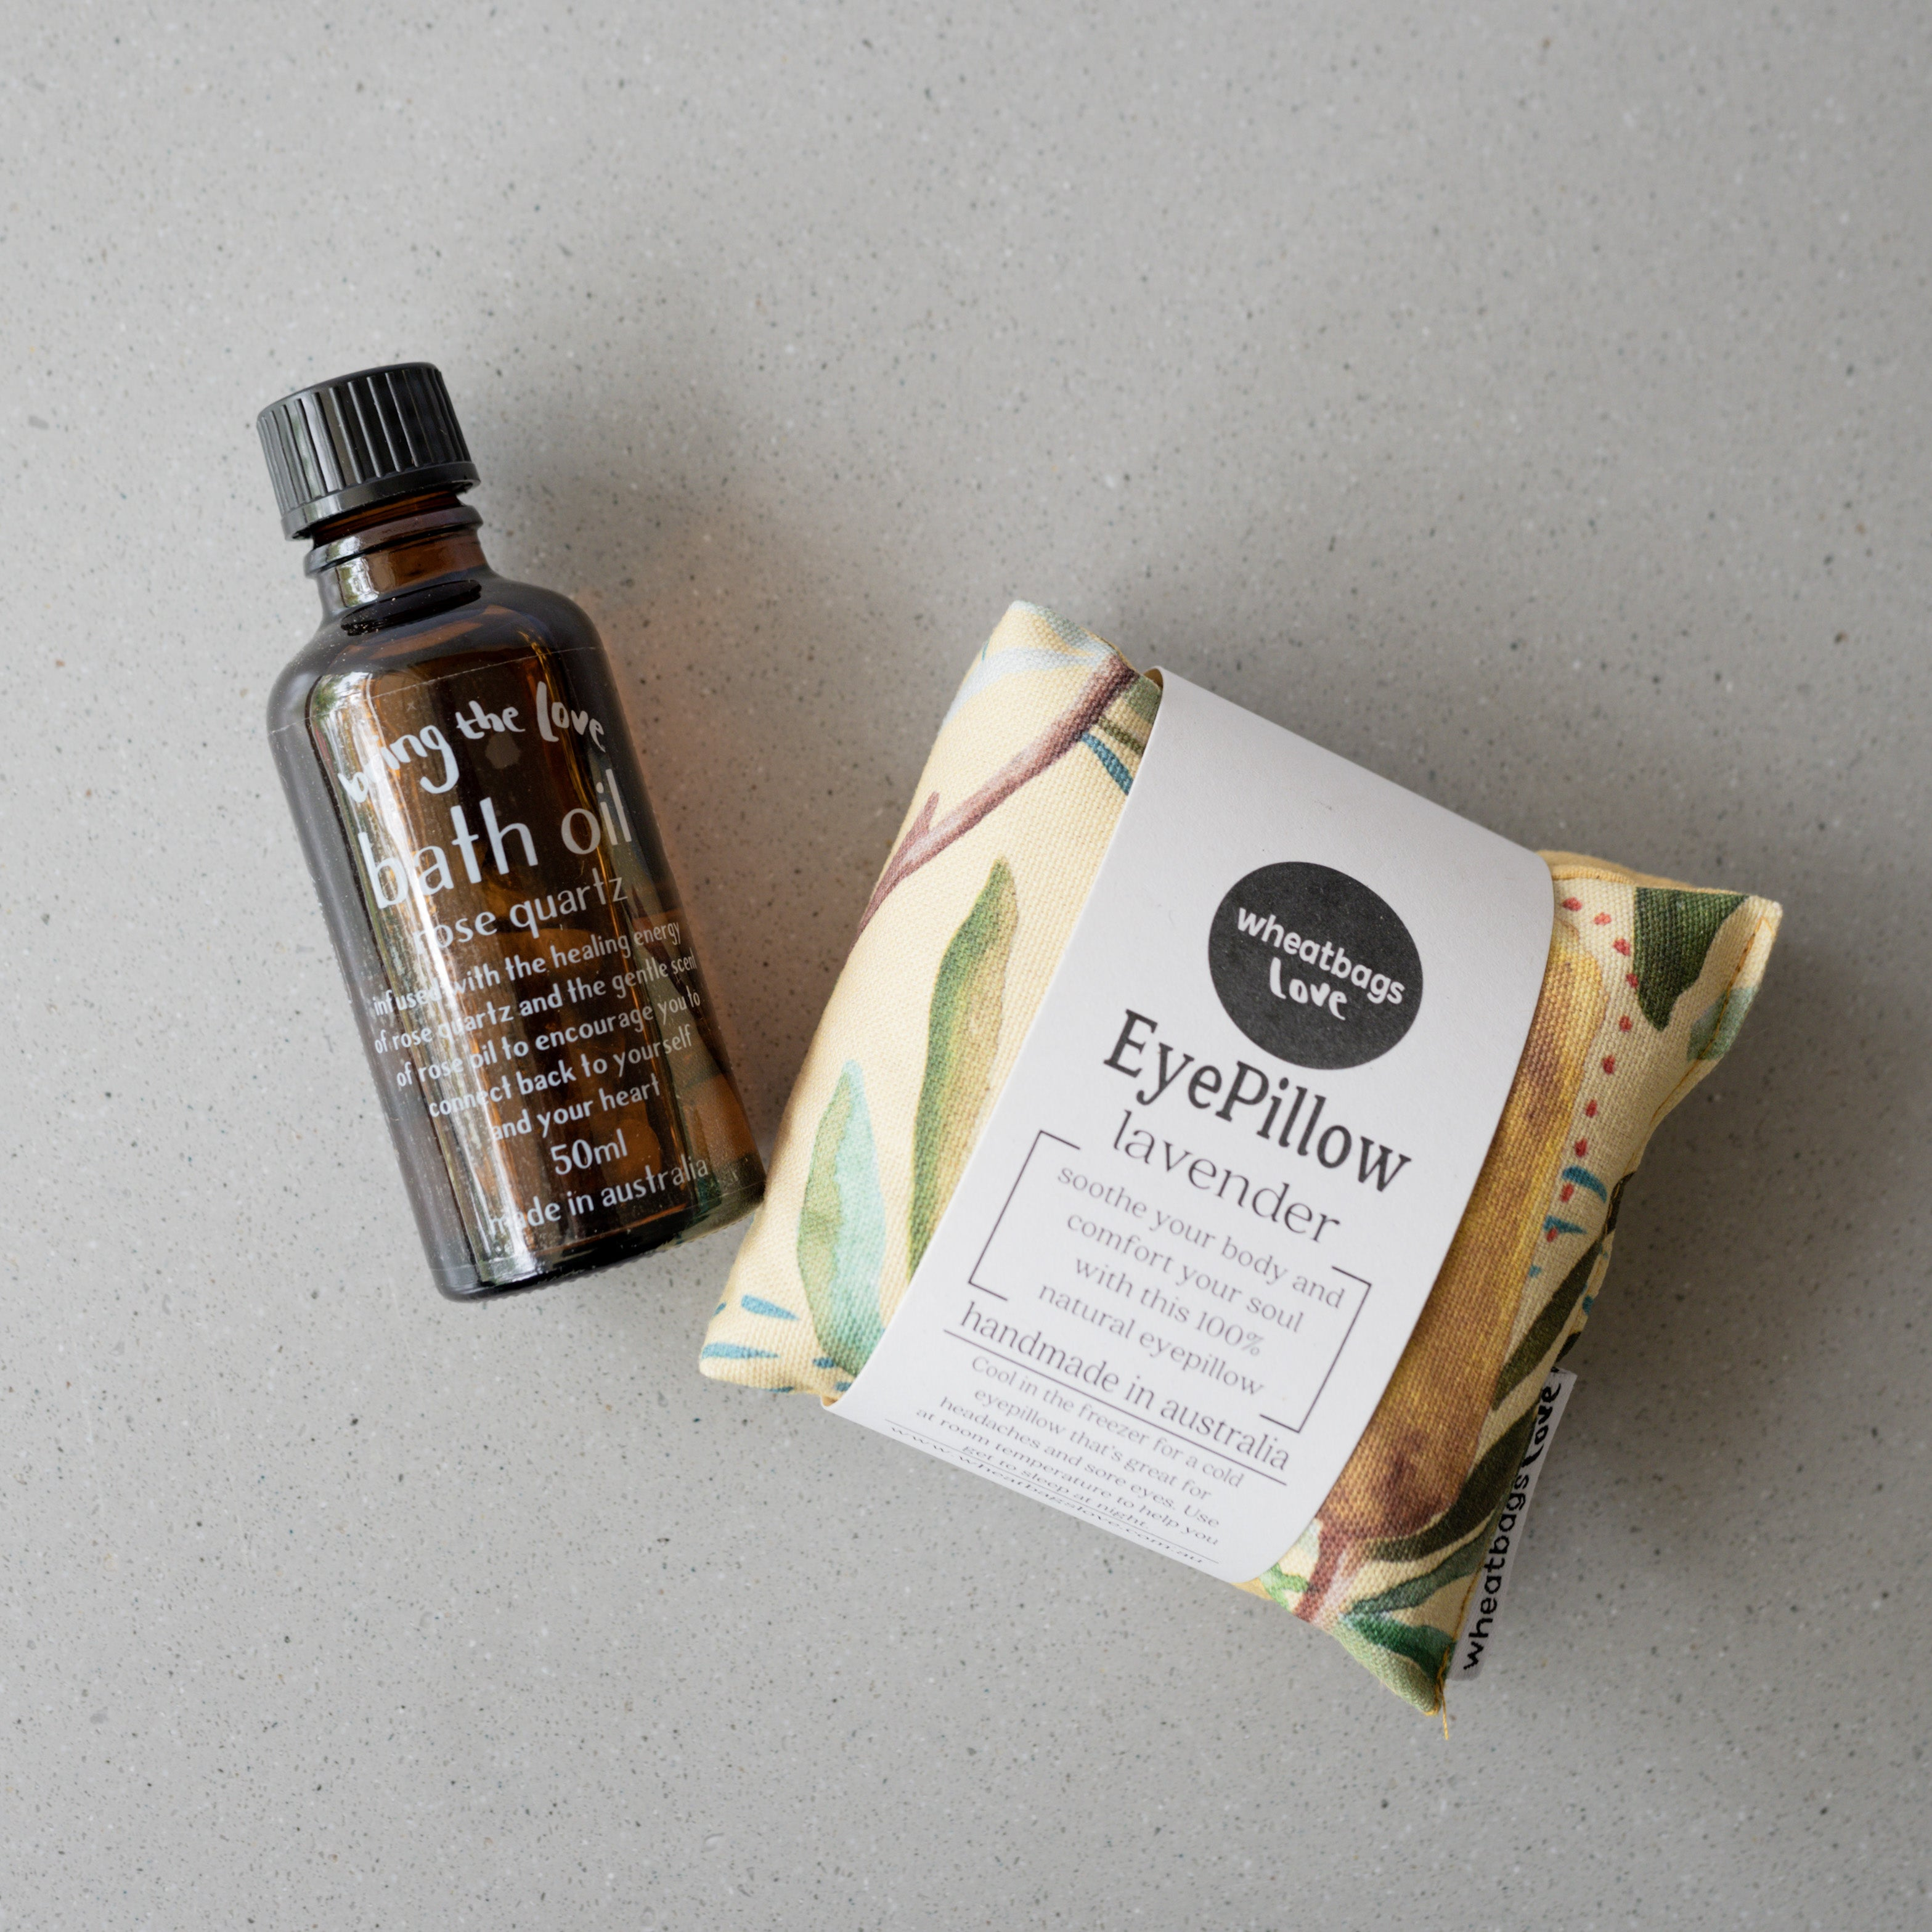 Wheatbags Love Relax Gift Pack Banksia - The Conscious Spender